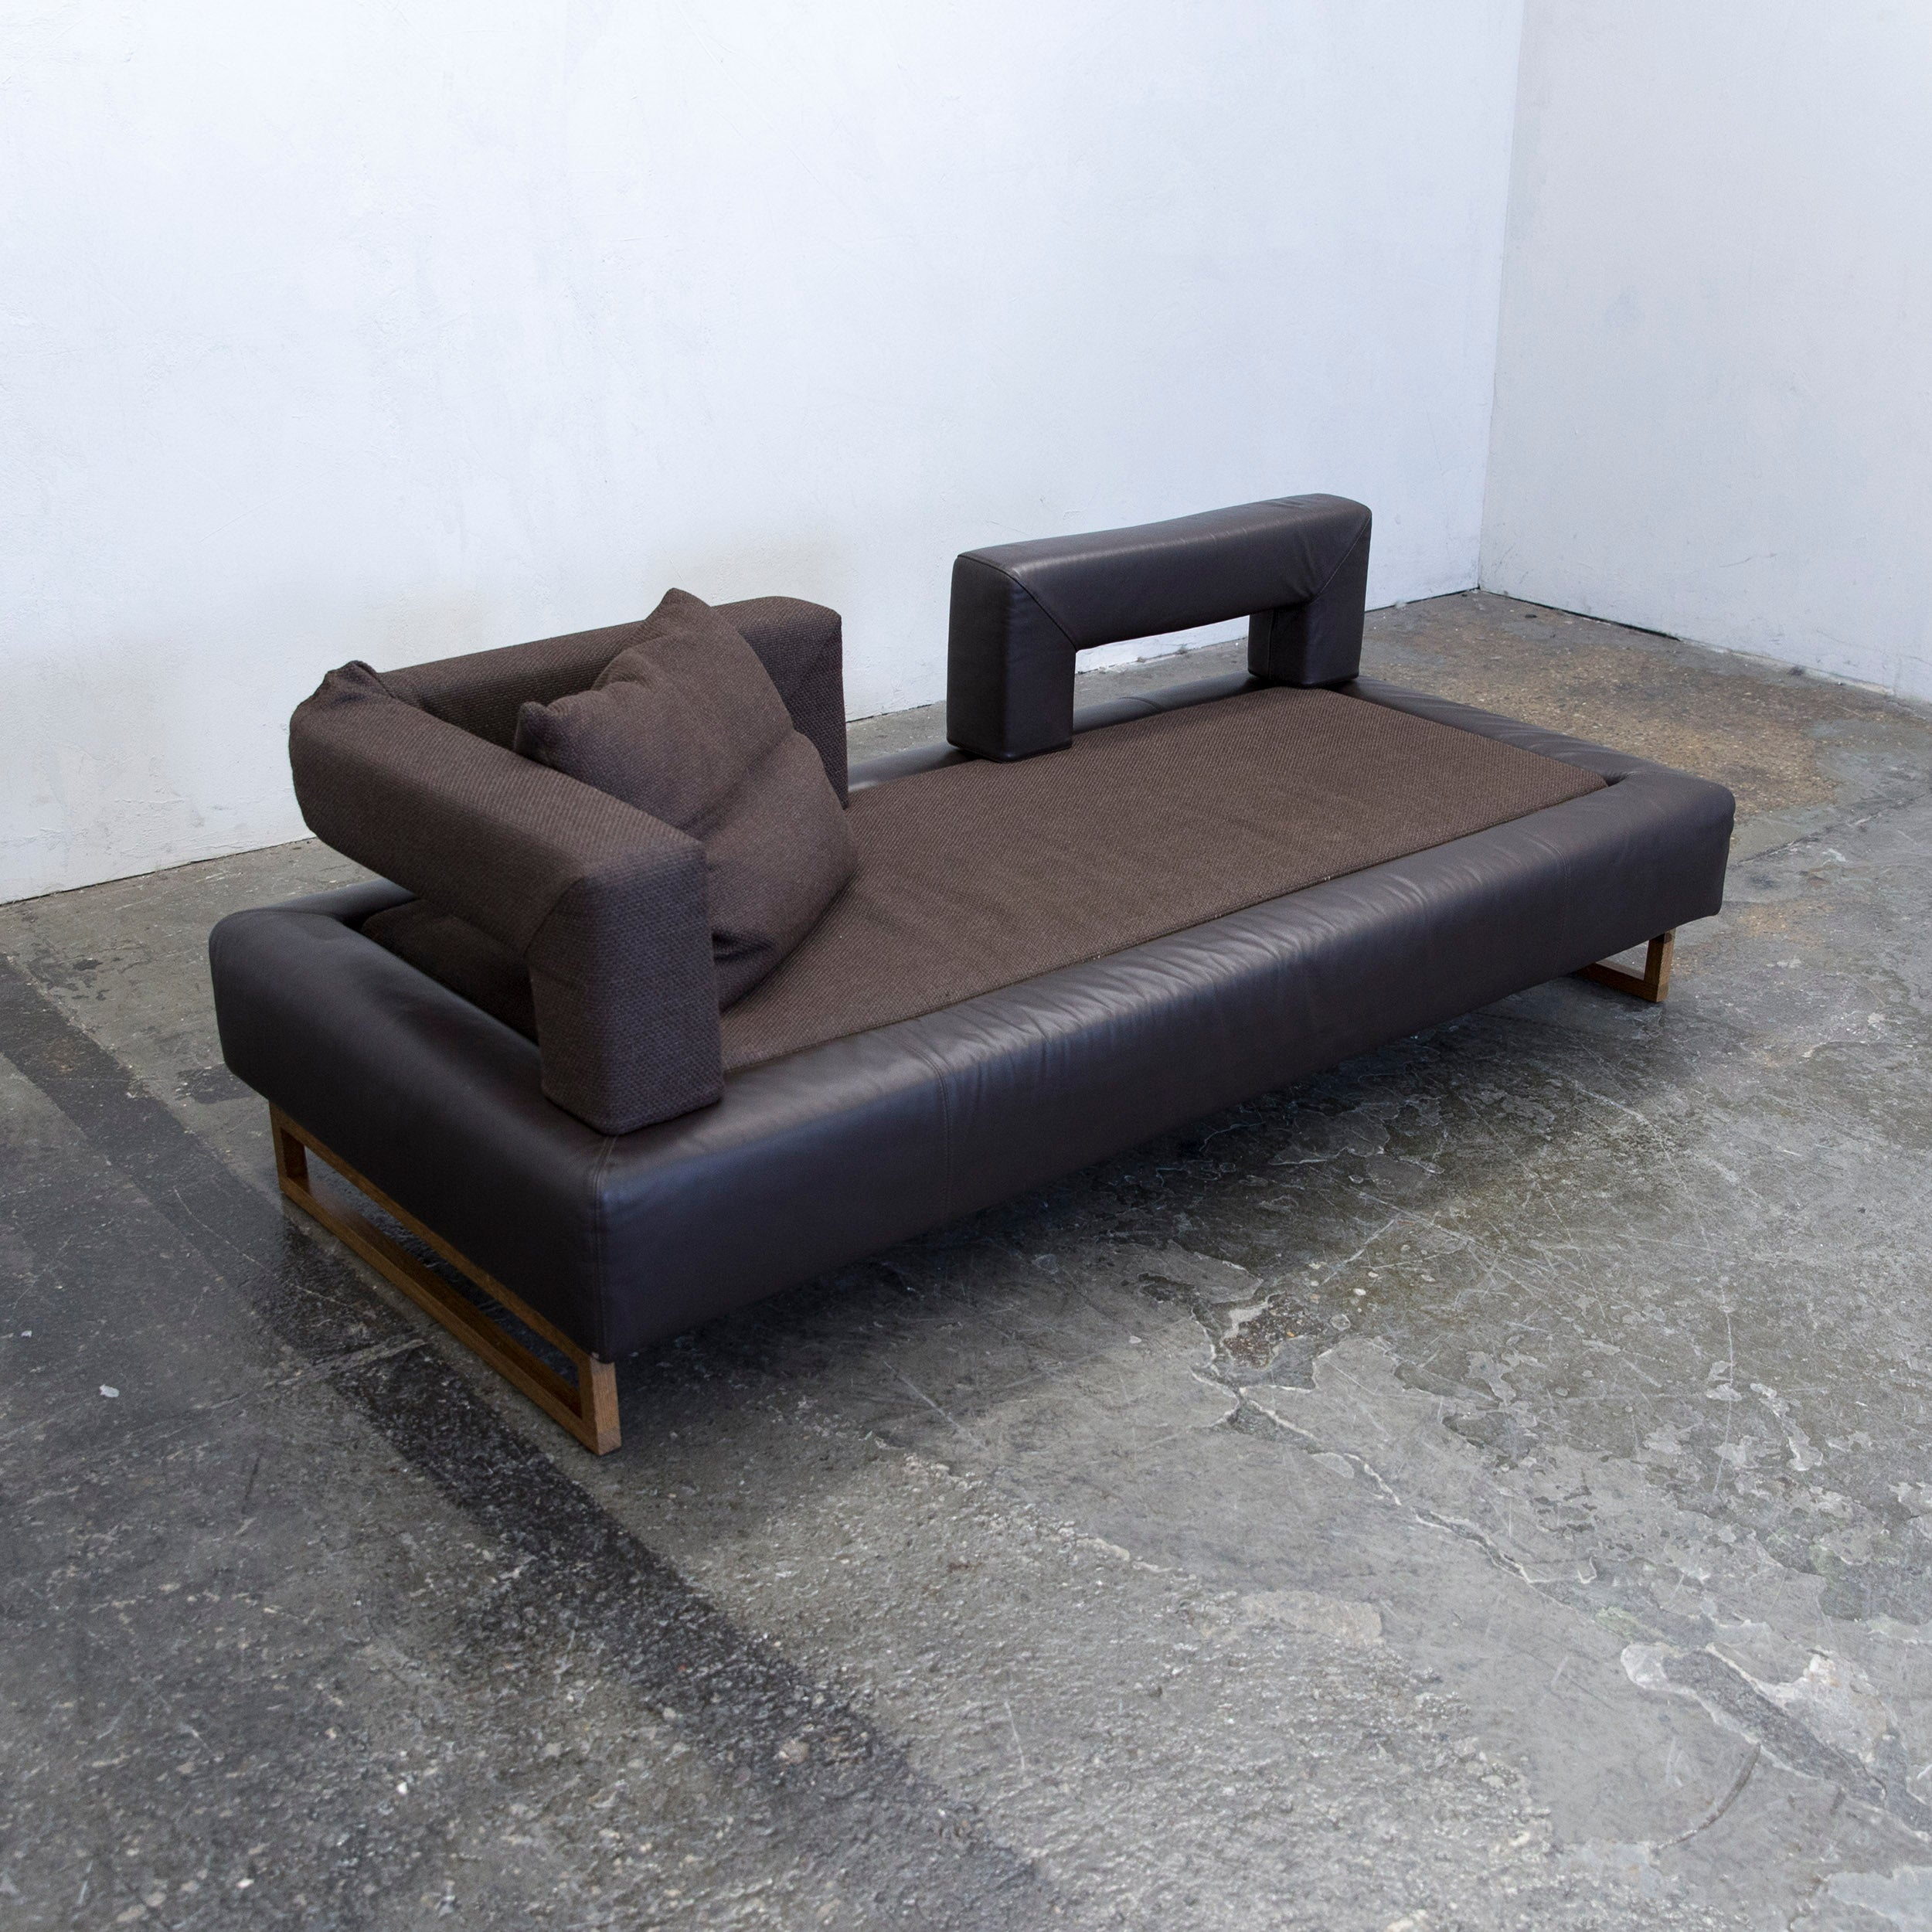 Bruhl And Sippold Plupp A P Designer Sofa Leather Fabric Brown